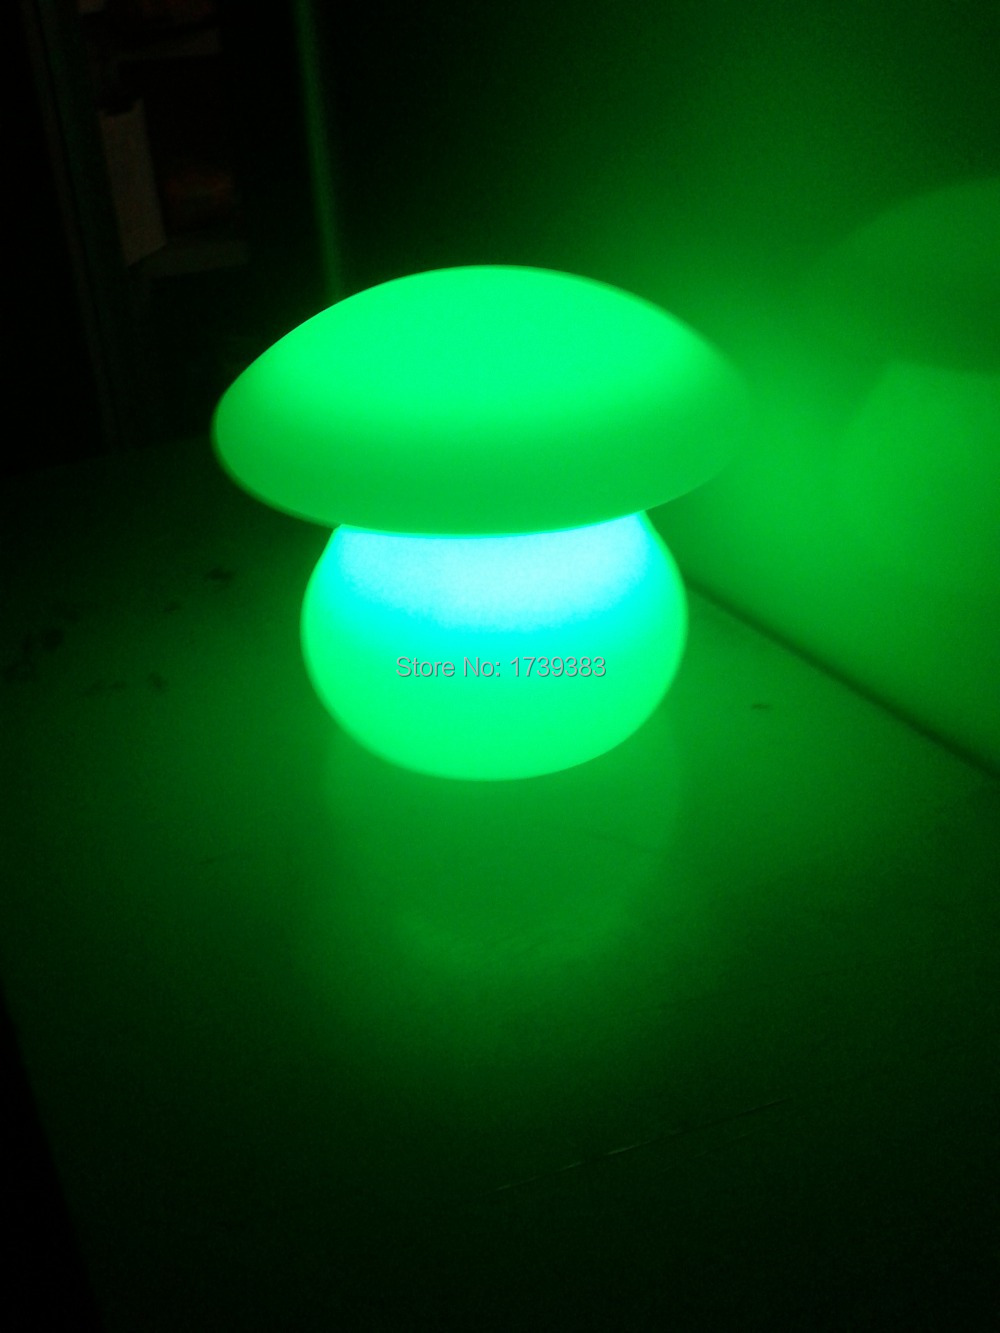 Free shipping Wireless charging waterproof LED Mushroom lamp Glowing Remote control Fungus Umbrella Table lamp LED Desk Light 6pieces dhl free shipping super bright 38leds rgbw remote control waterproof outdoor wireless glowing module led